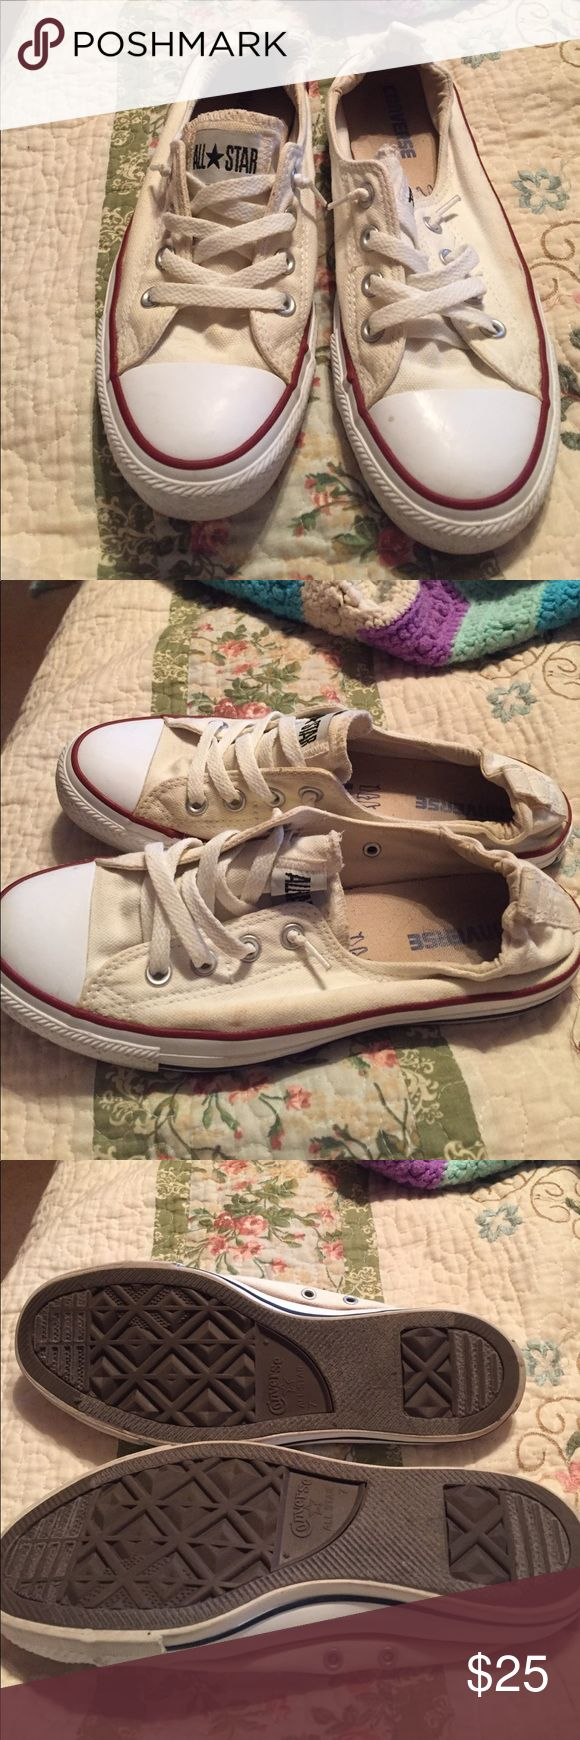 converse shoreline size 9 womens white Up for sale is an awesome pair of white Converse shoreline sneakers size 9 Converse Shoes Sneakers